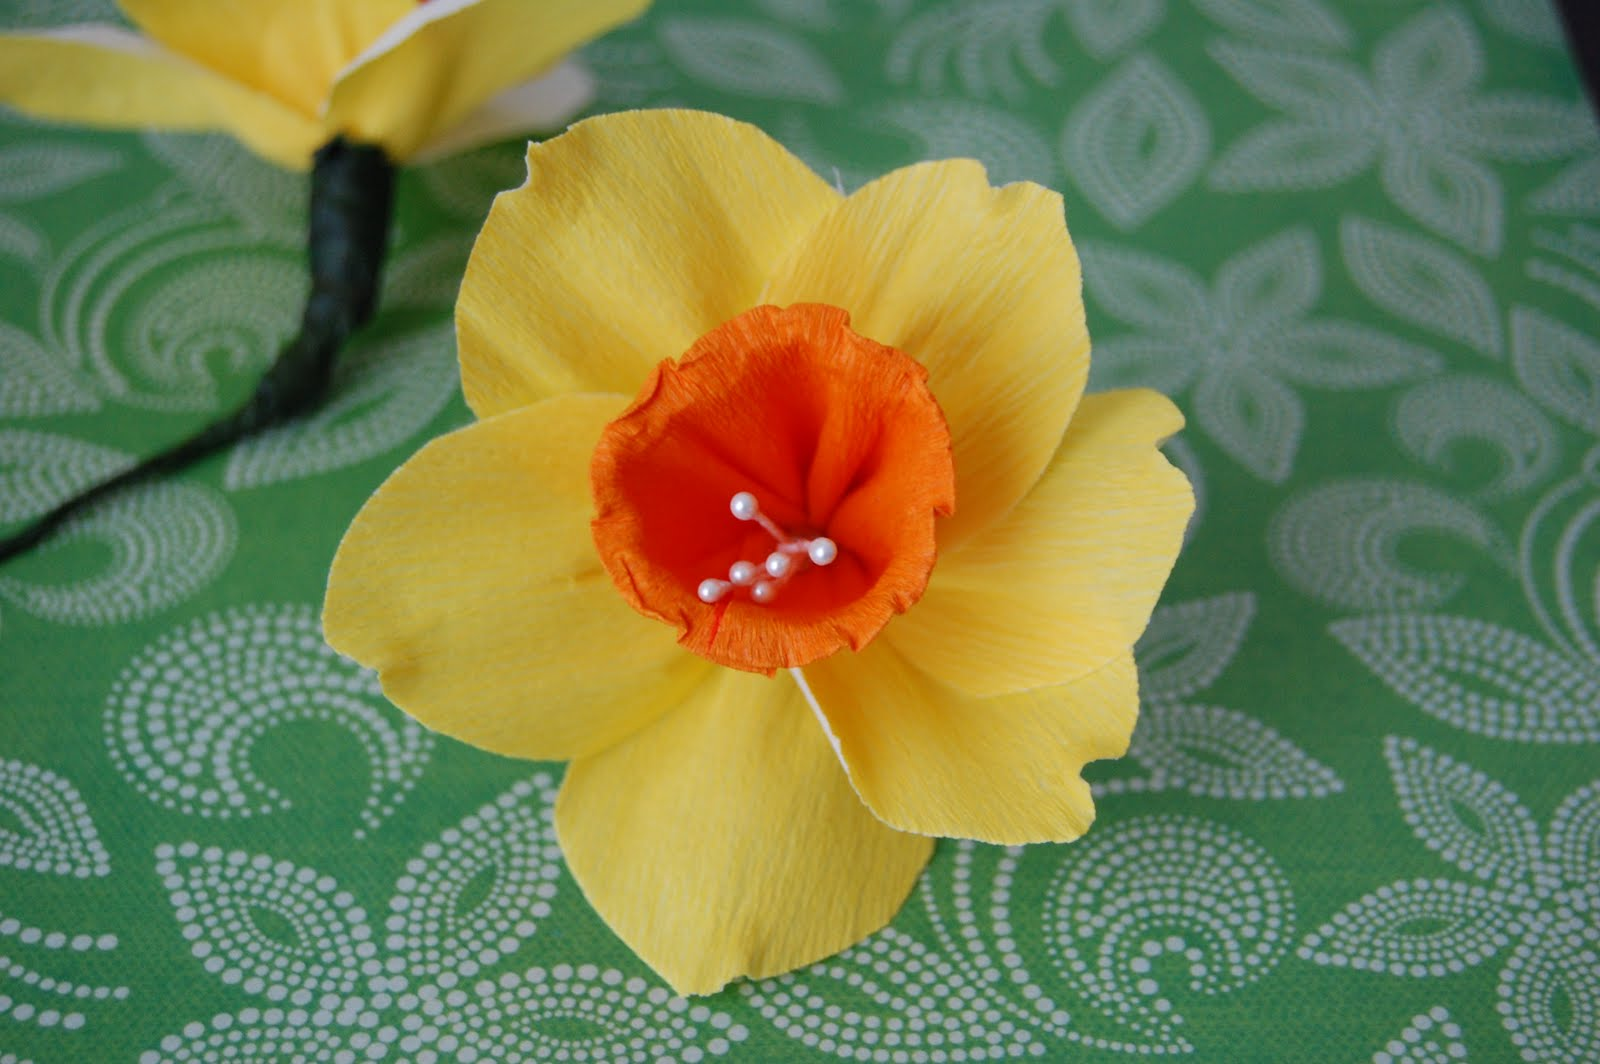 daffodil flower essay Make faux crepe paper daffodils, an easy seasonal flower craft and decoration for spring, with this how-to from morgan levine on the martha stewart show.